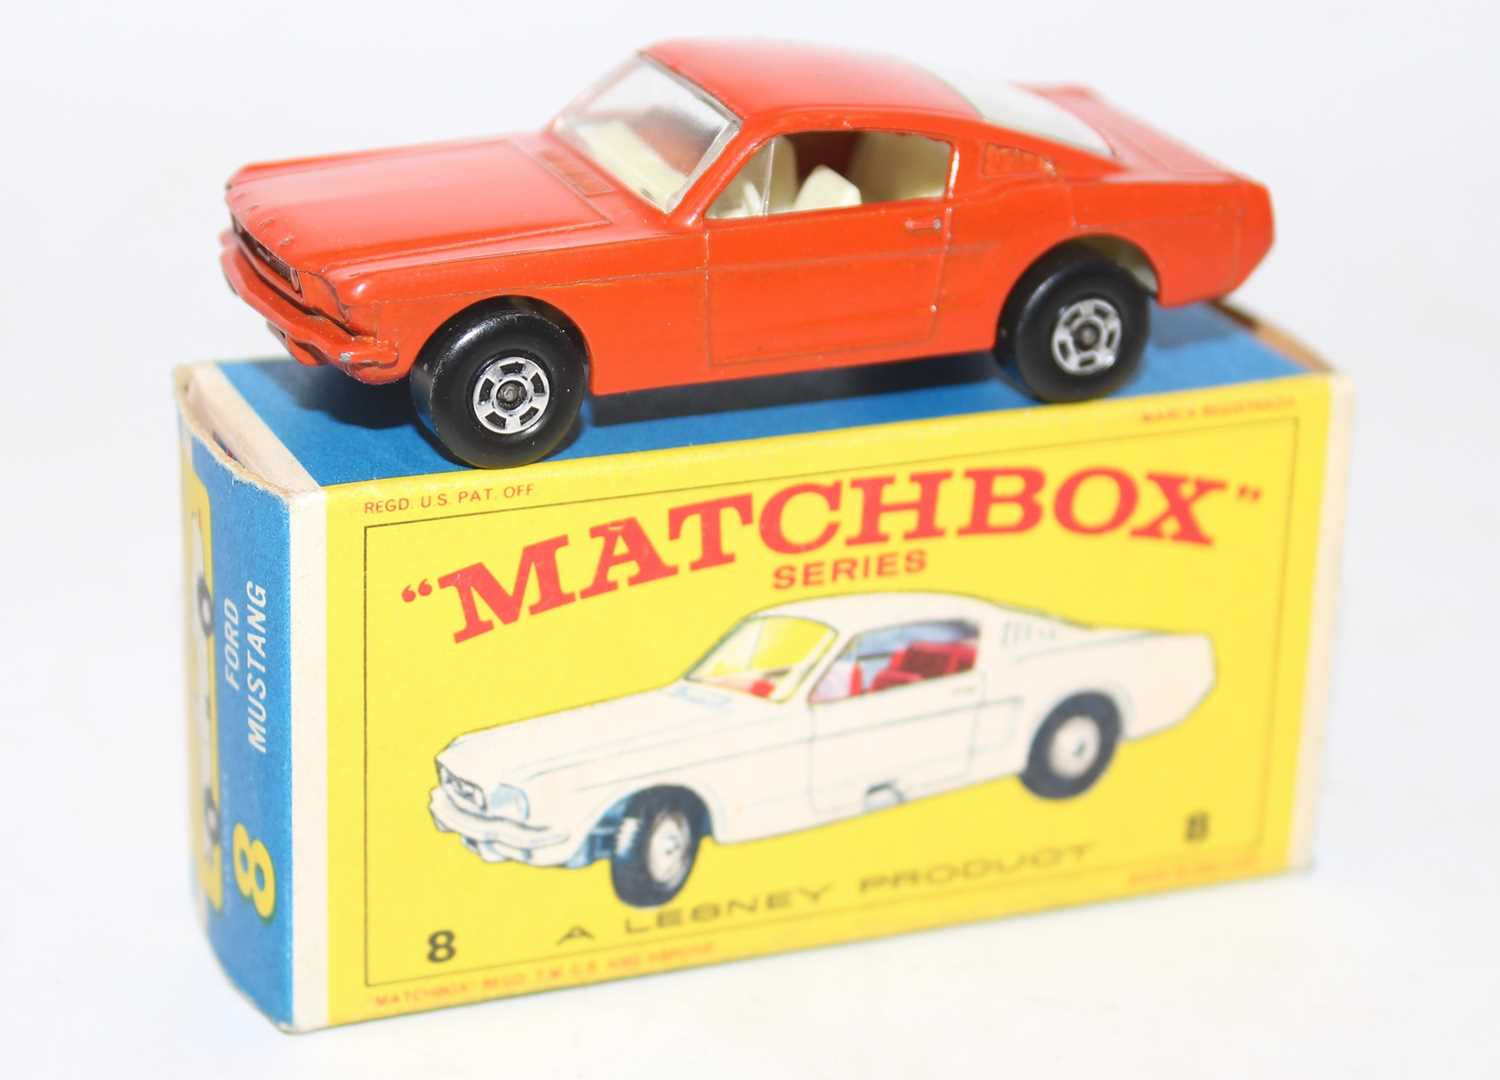 Matchbox No.8 Ford Mustang in orange-red with wide superfast wheels and white interior in a